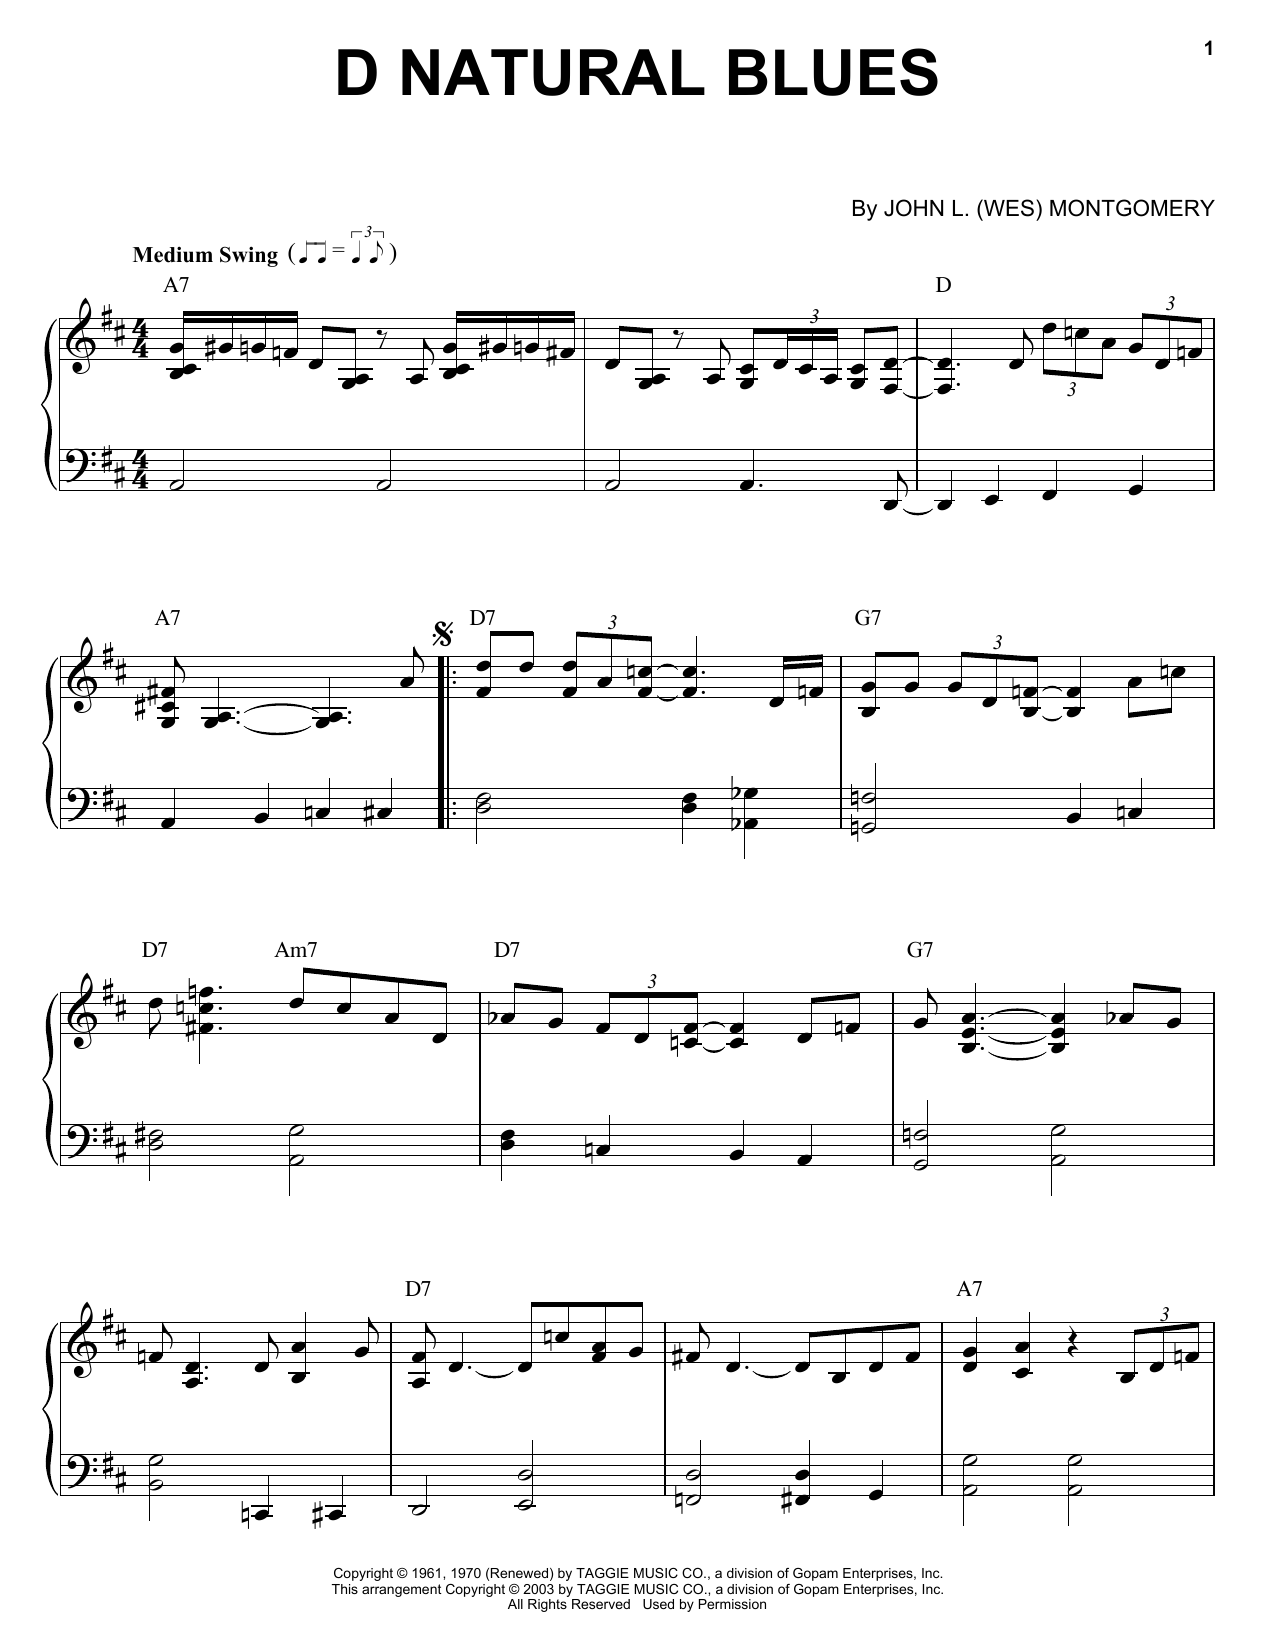 D Natural Blues sheet music for piano solo by Wes Montgomery